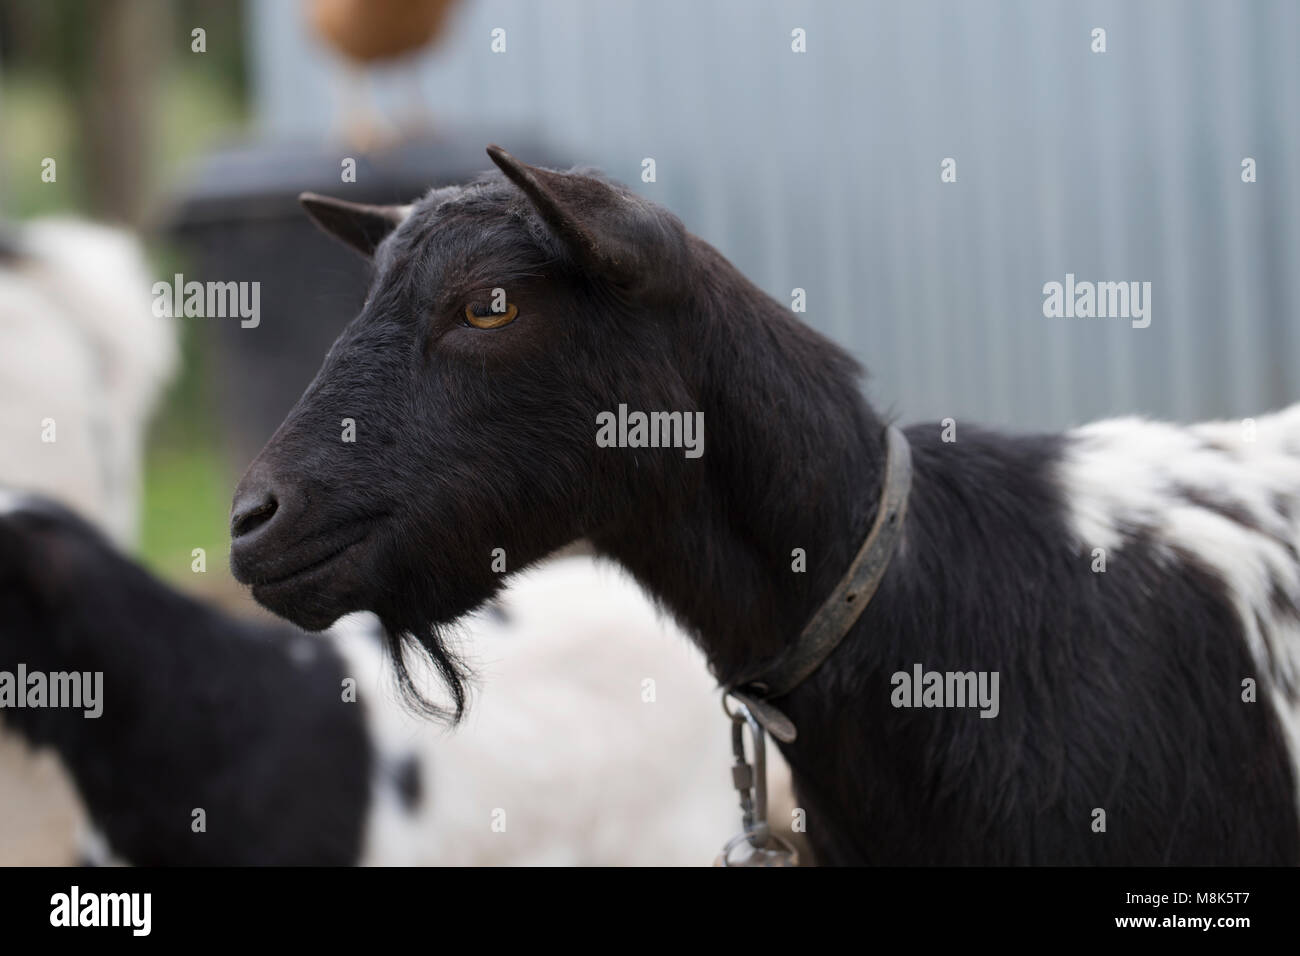 African pygmy goat - Stock Image